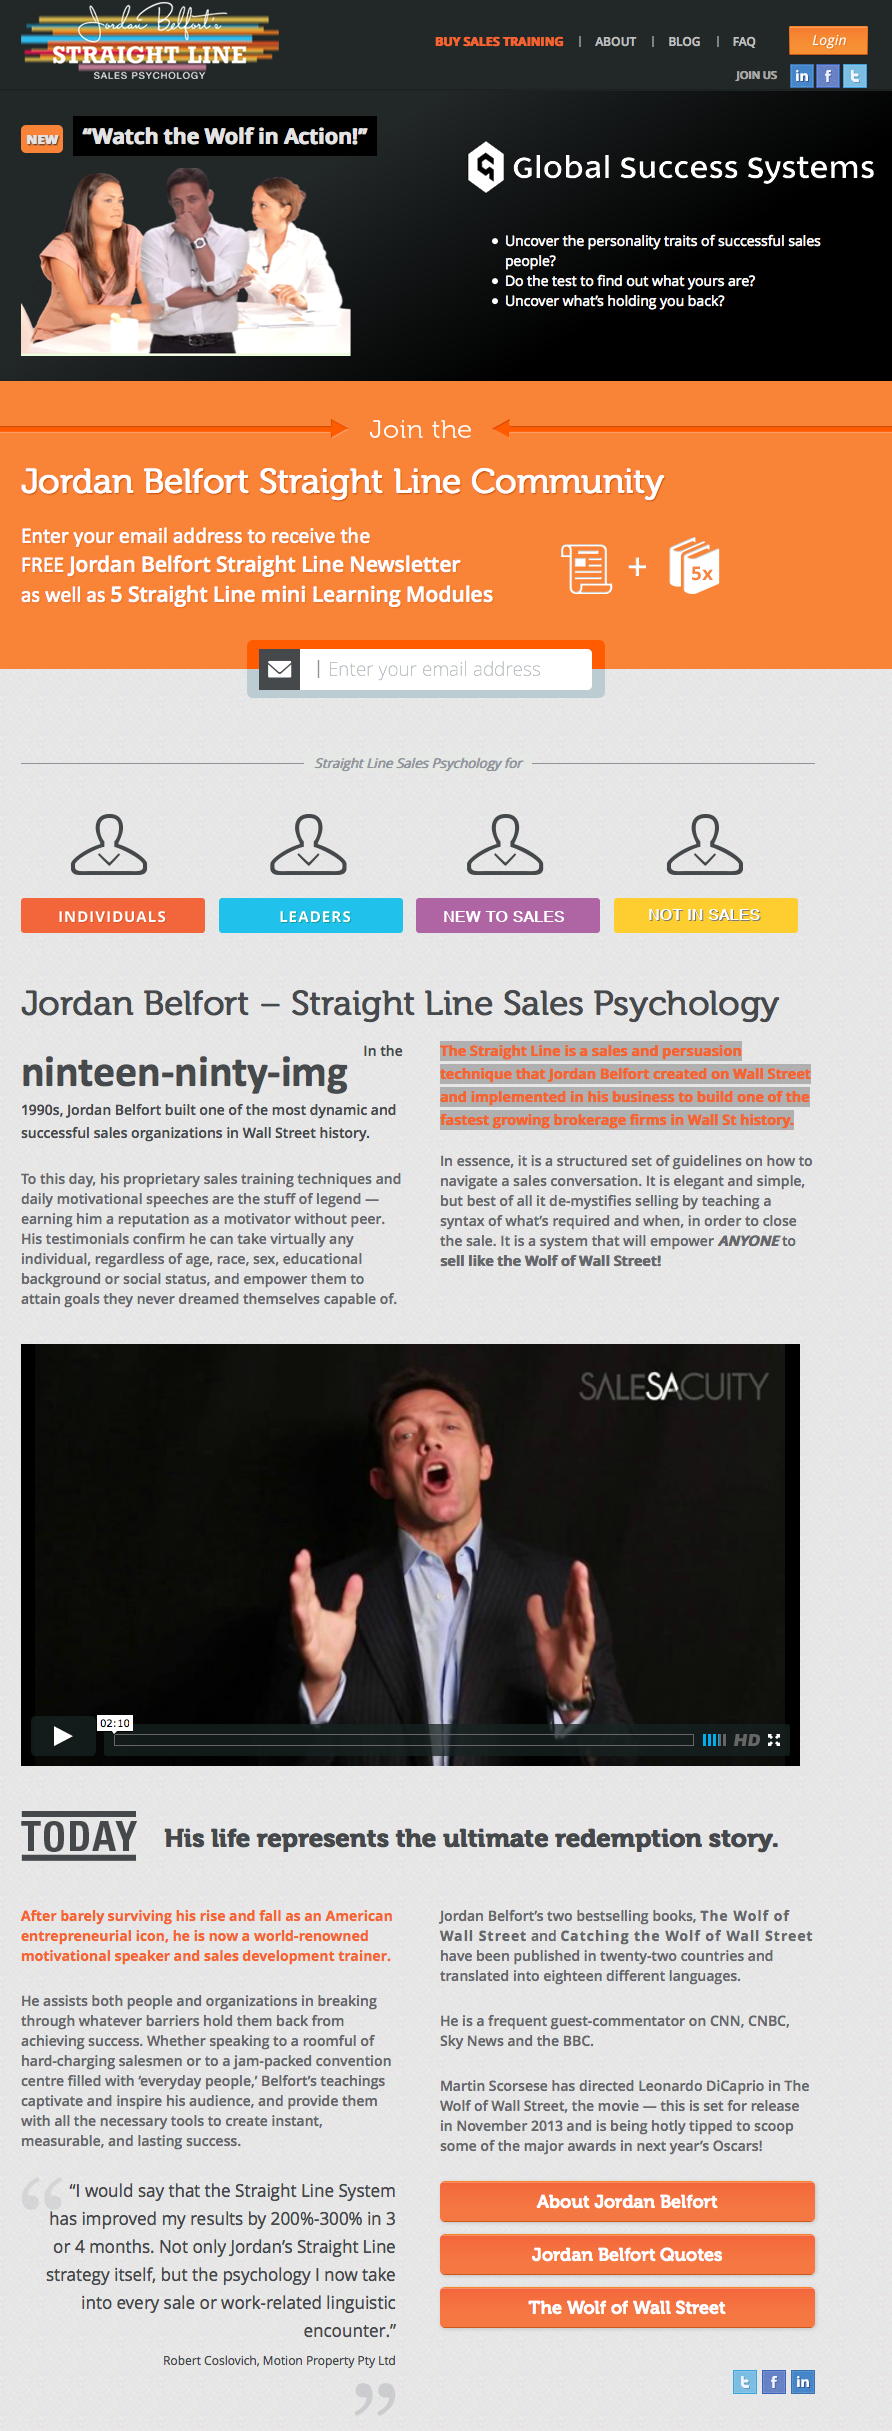 Jordan Belfort – Straight Line Sales Psychology – $599